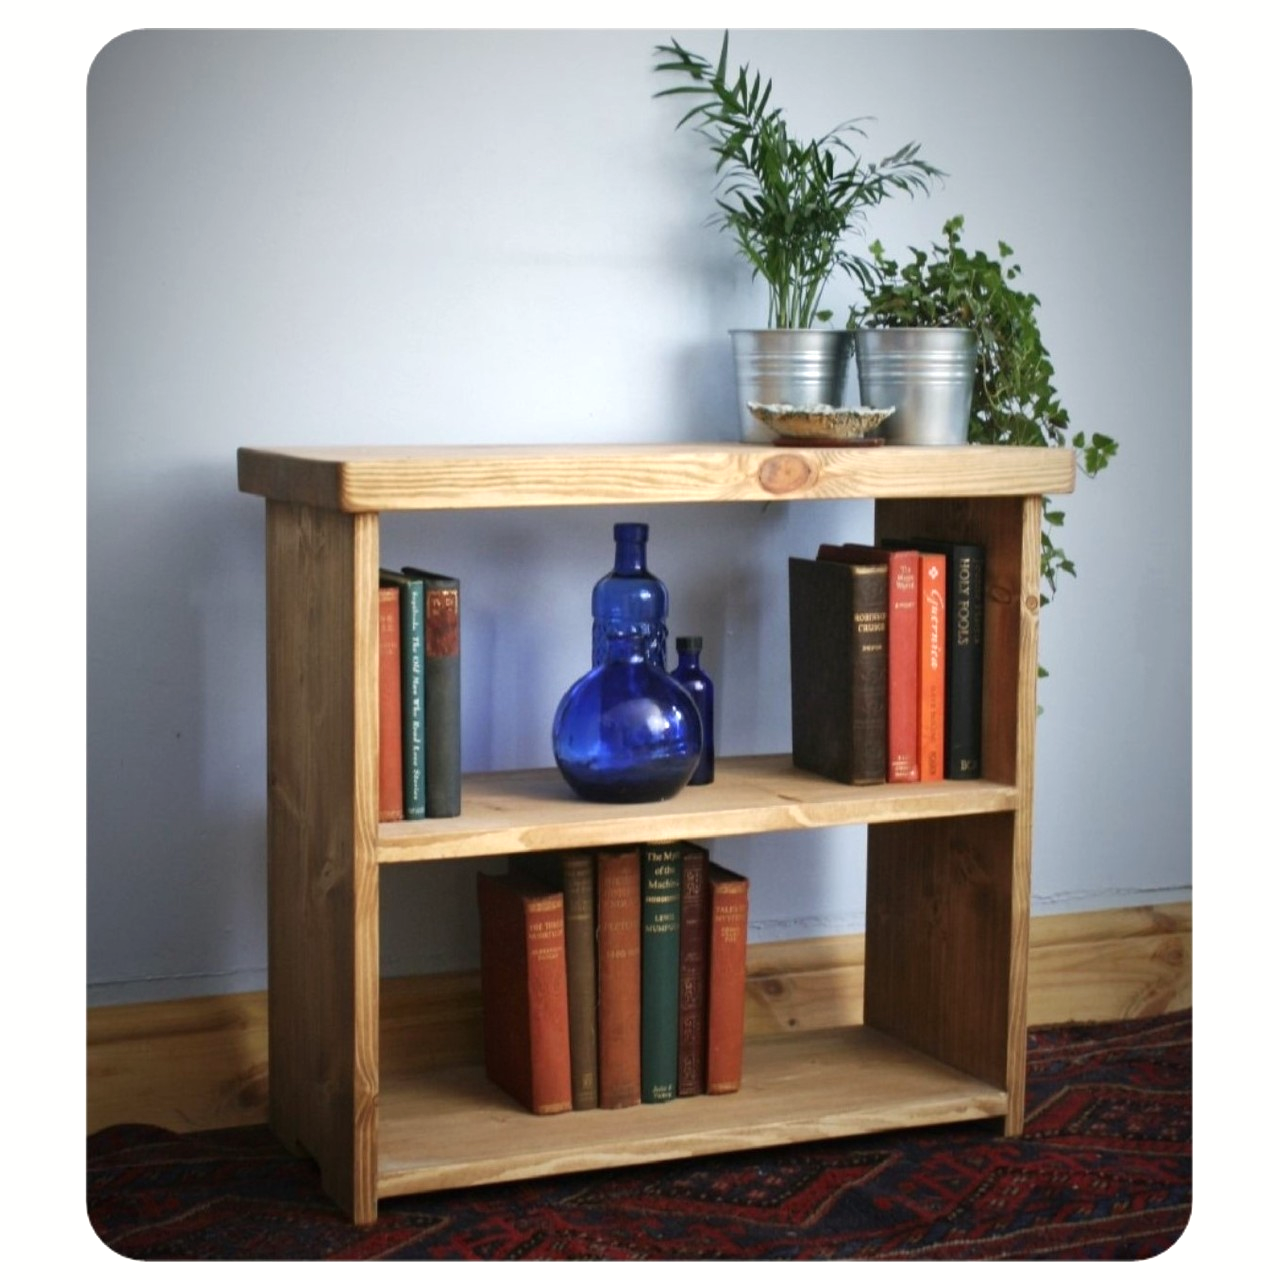 Low Wooden Bookshelf Small Bookcase Shelves 65w X 60h X 29d Cm In